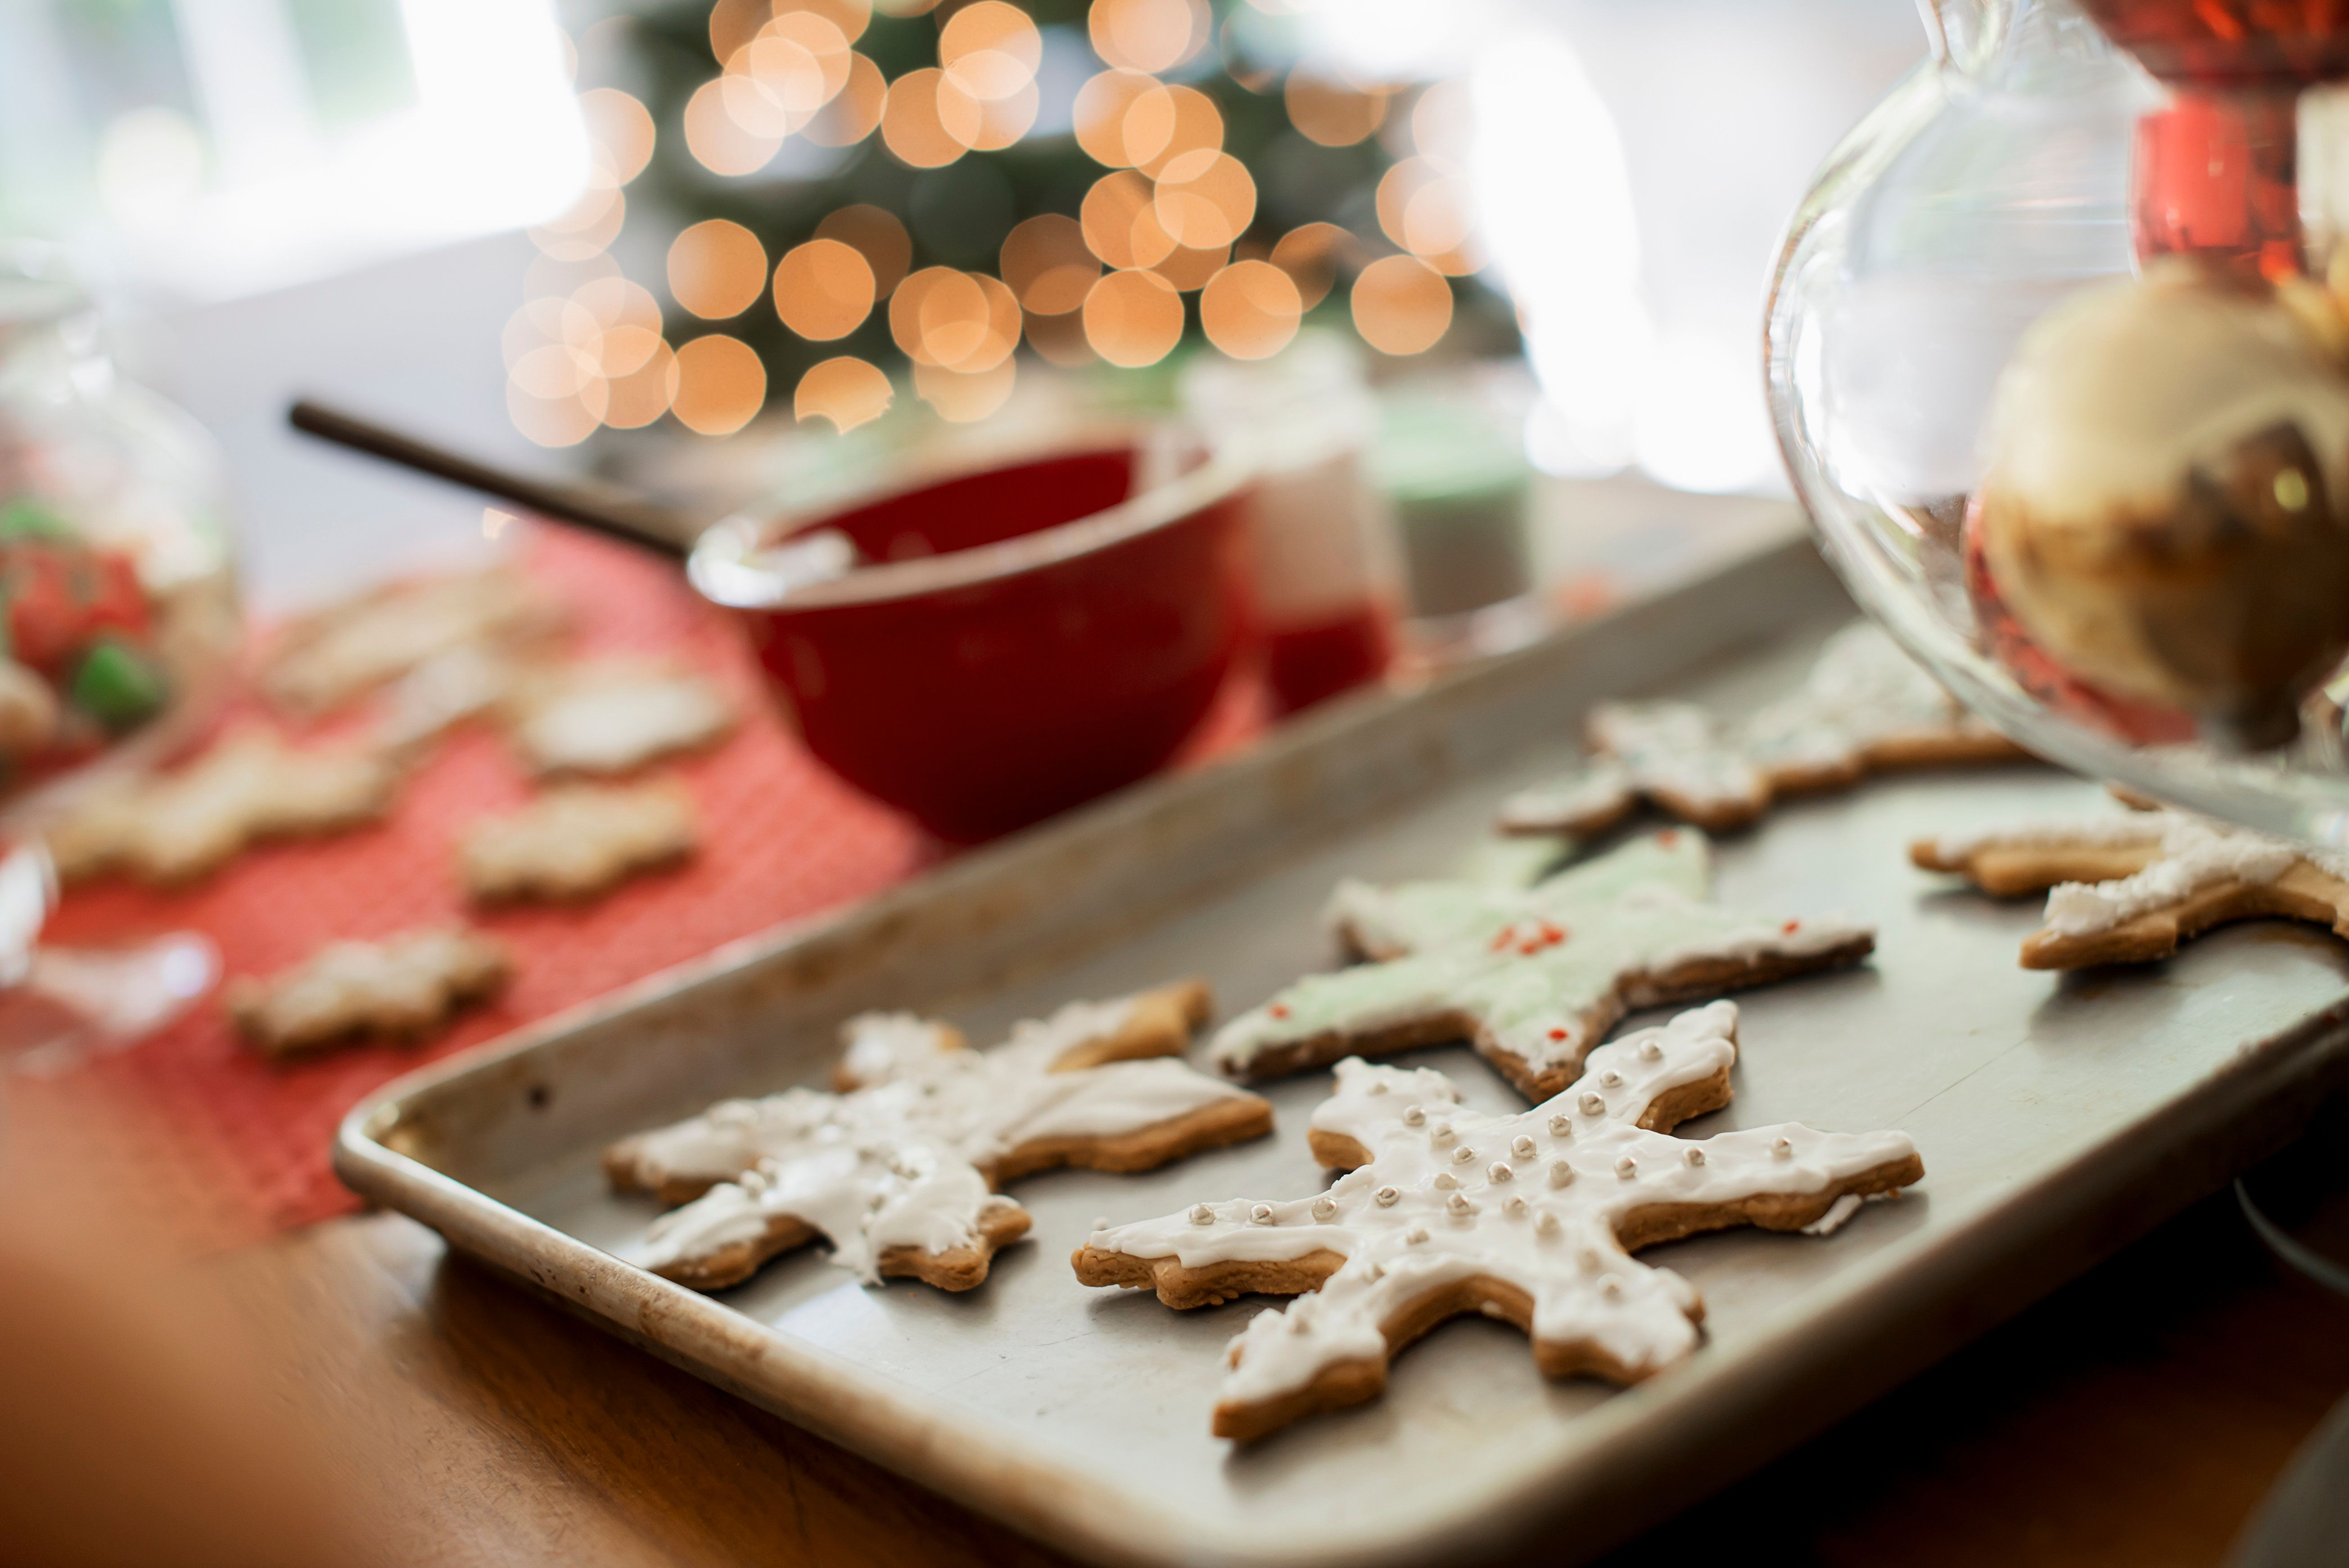 We asked members of the HuffPost Parents community about their holiday traditions that don't focus on toys. Baking good